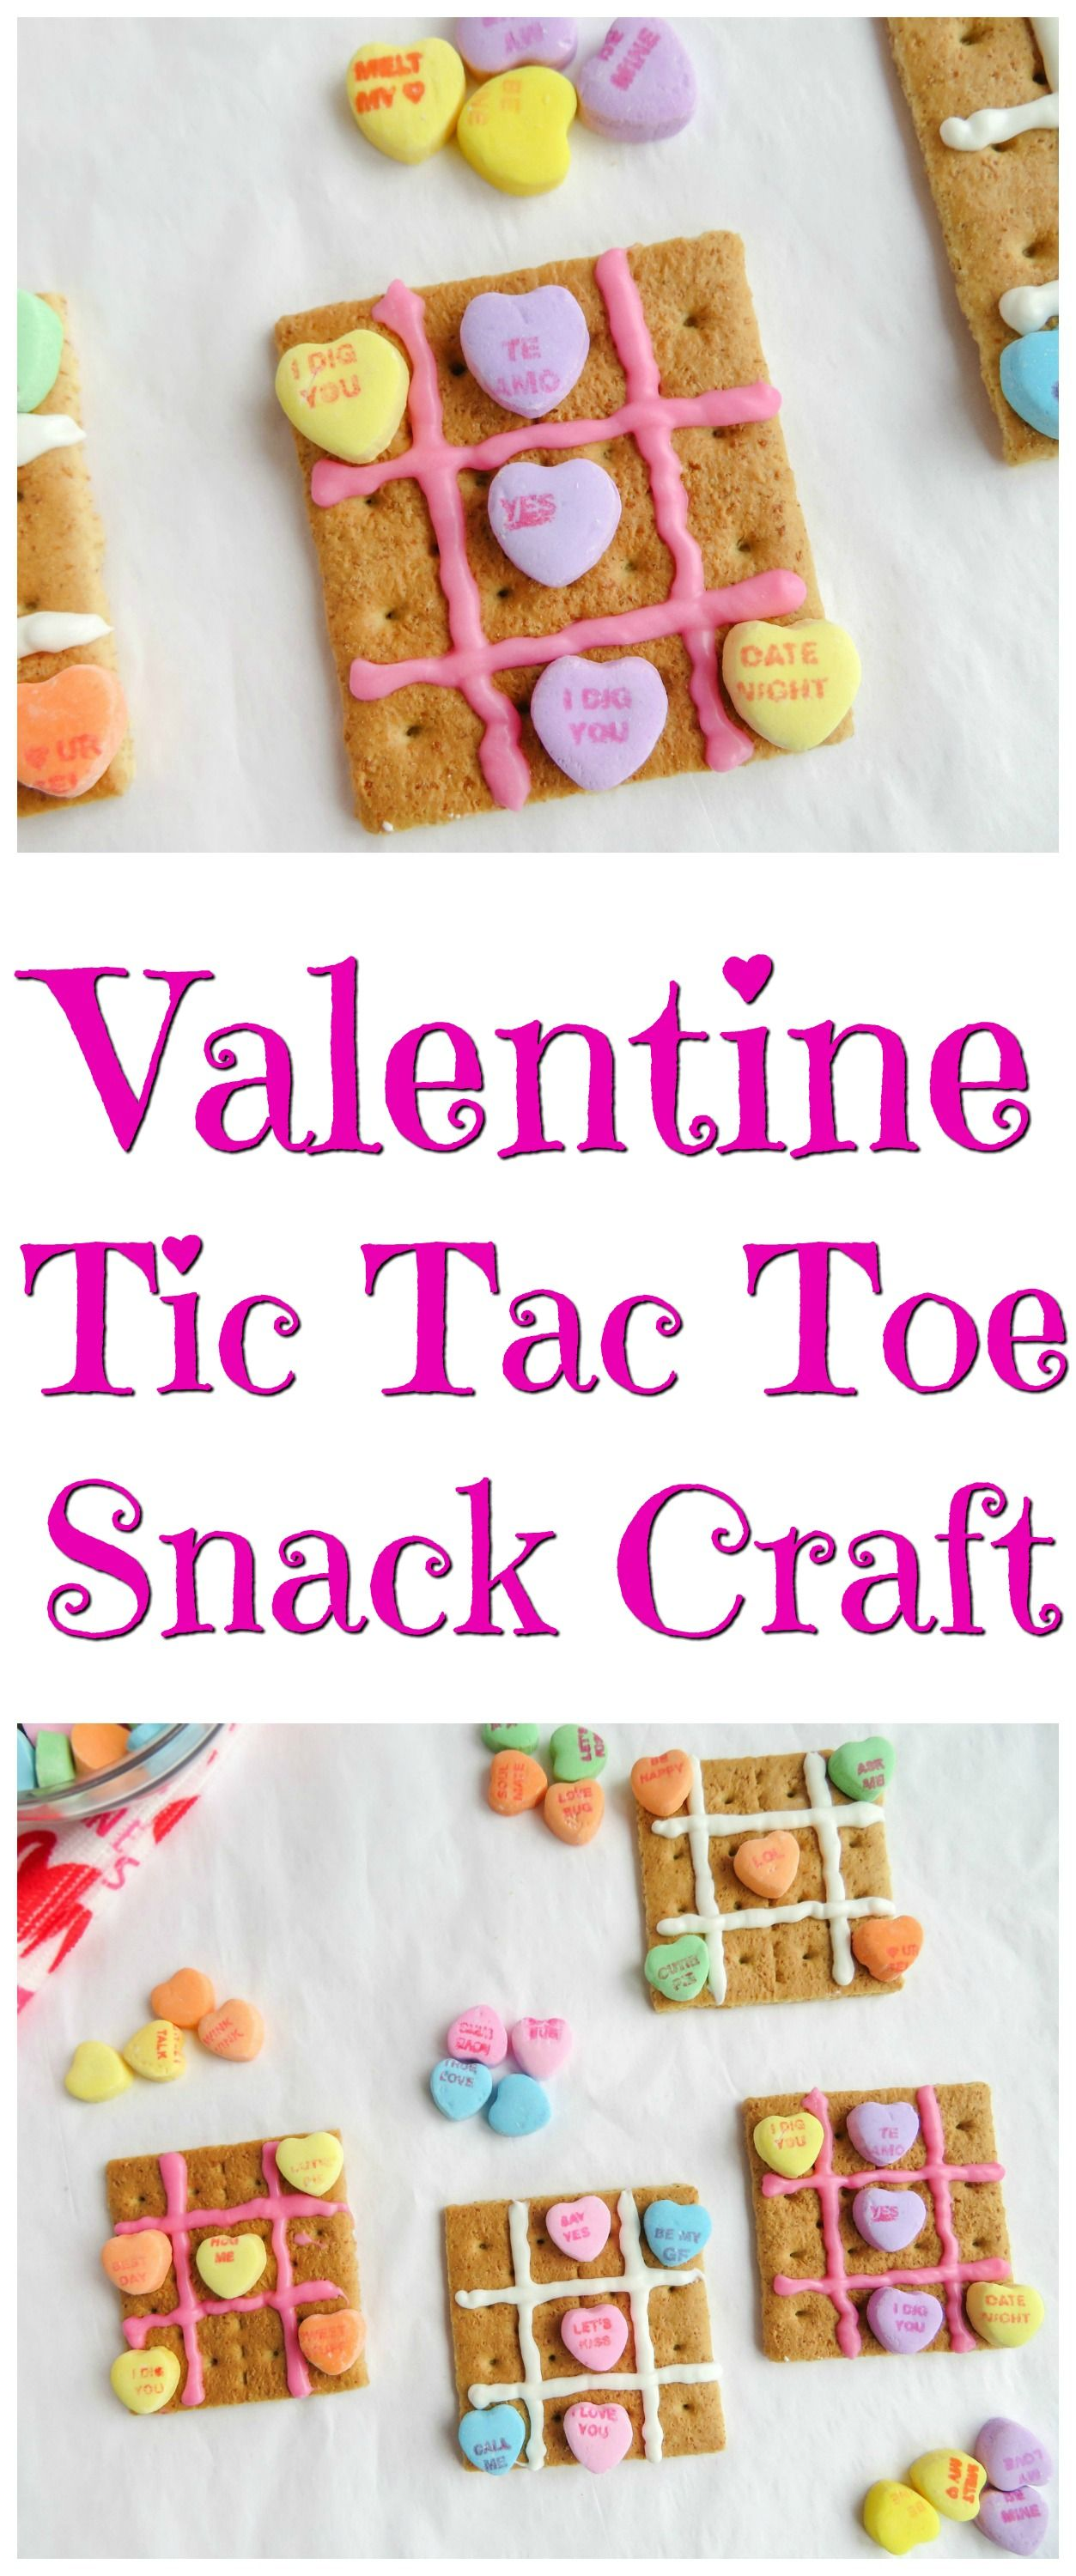 Valentine Tic Tac Toe Snack Craft - perfect for a classroom party too!  sc 1 st  Pinterest & Valentine Tic Tac Toe Snack Craft | Tic tac toe Snacks and Craft Aboutintivar.Com